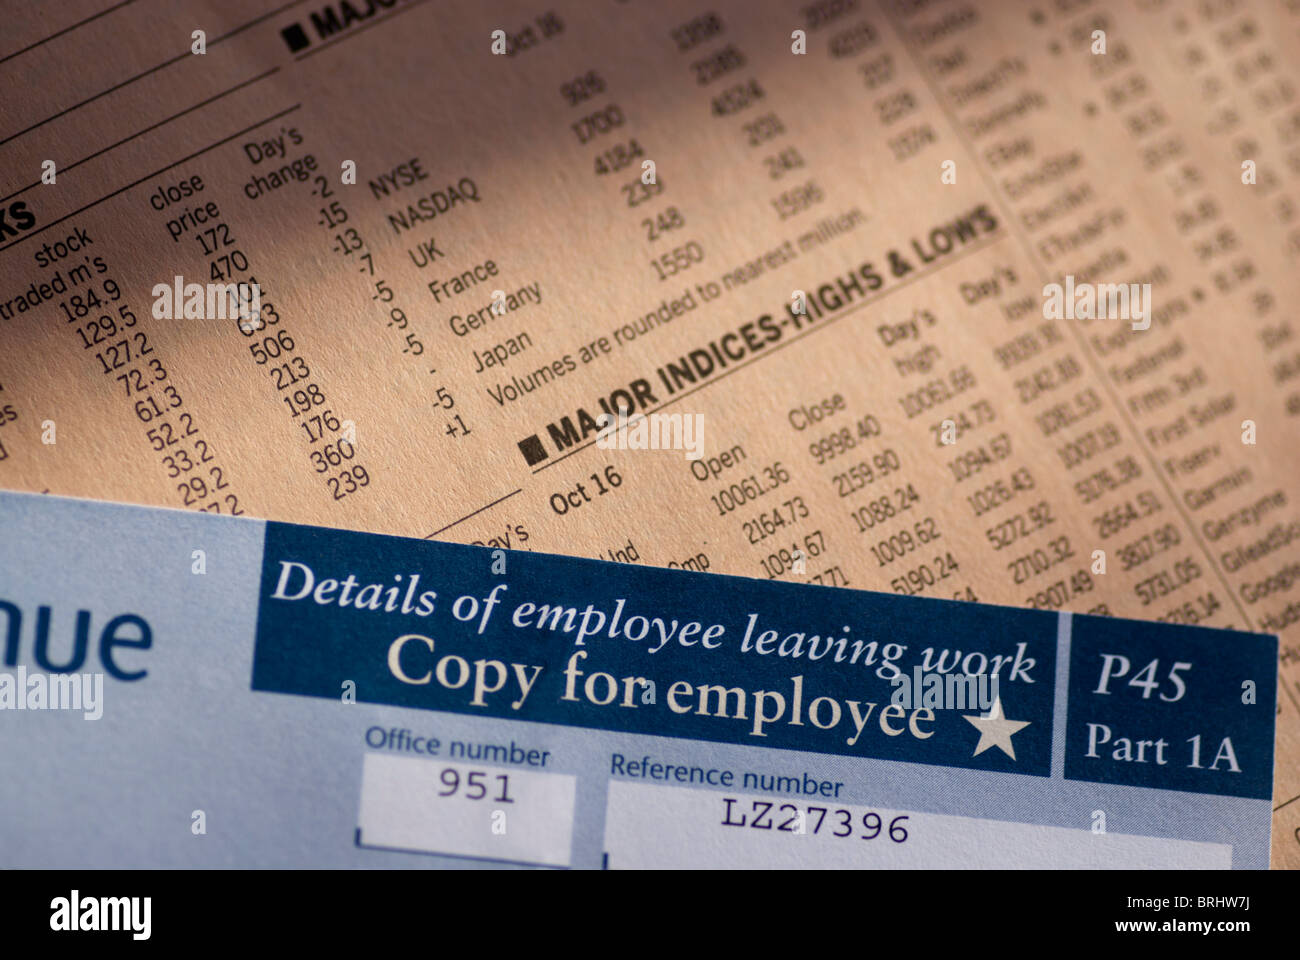 P45 redundancy notice - Stock Image